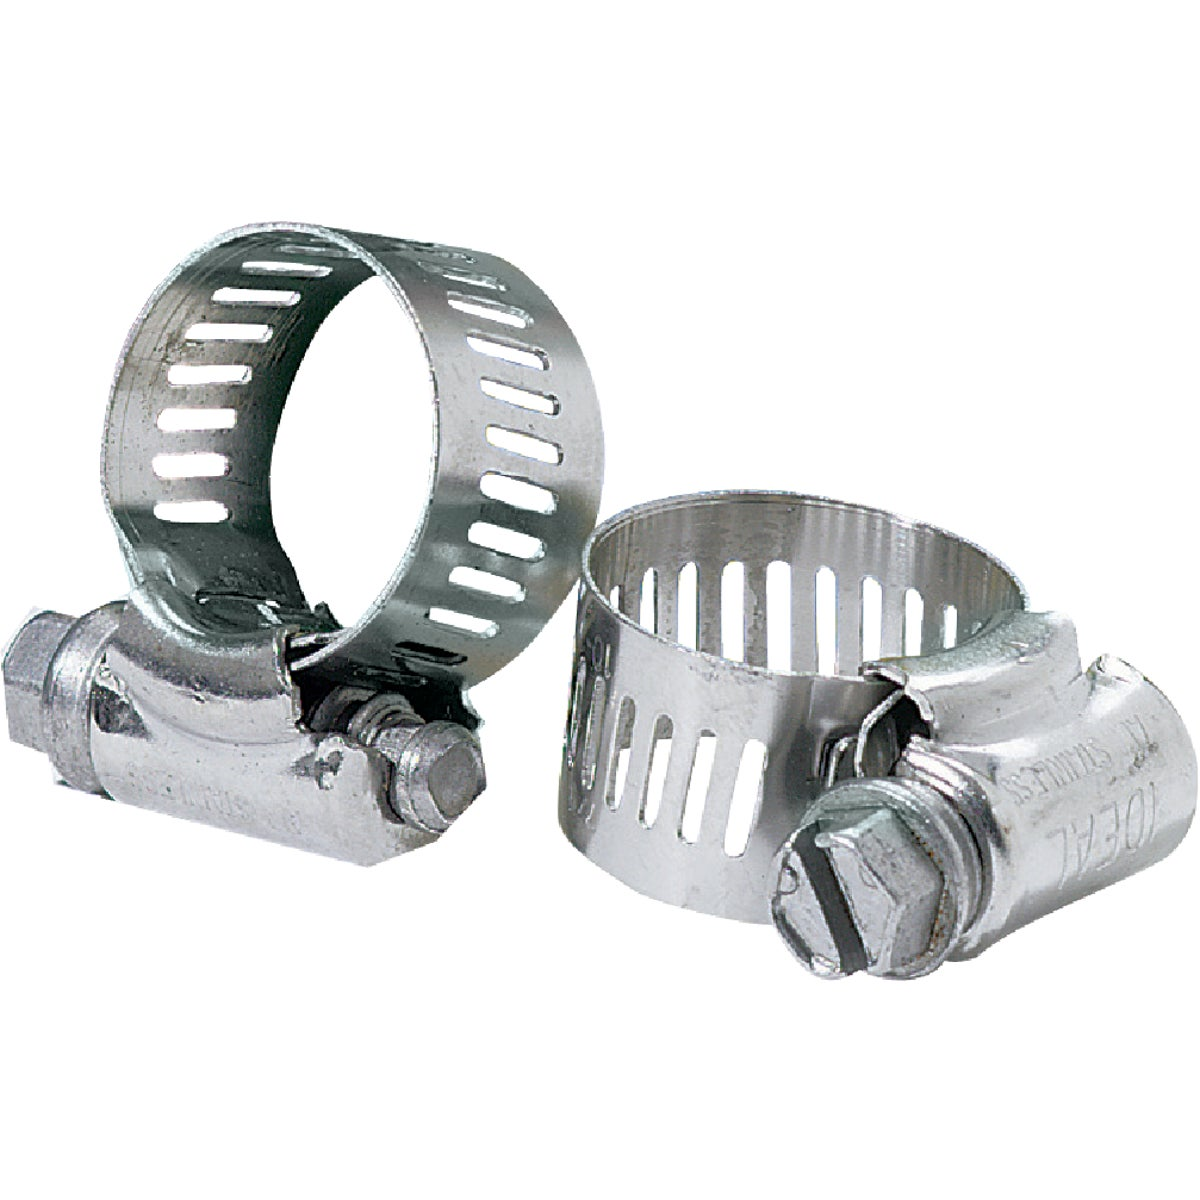 "2-1/2"" TO 4-1/2"" CLAMP"